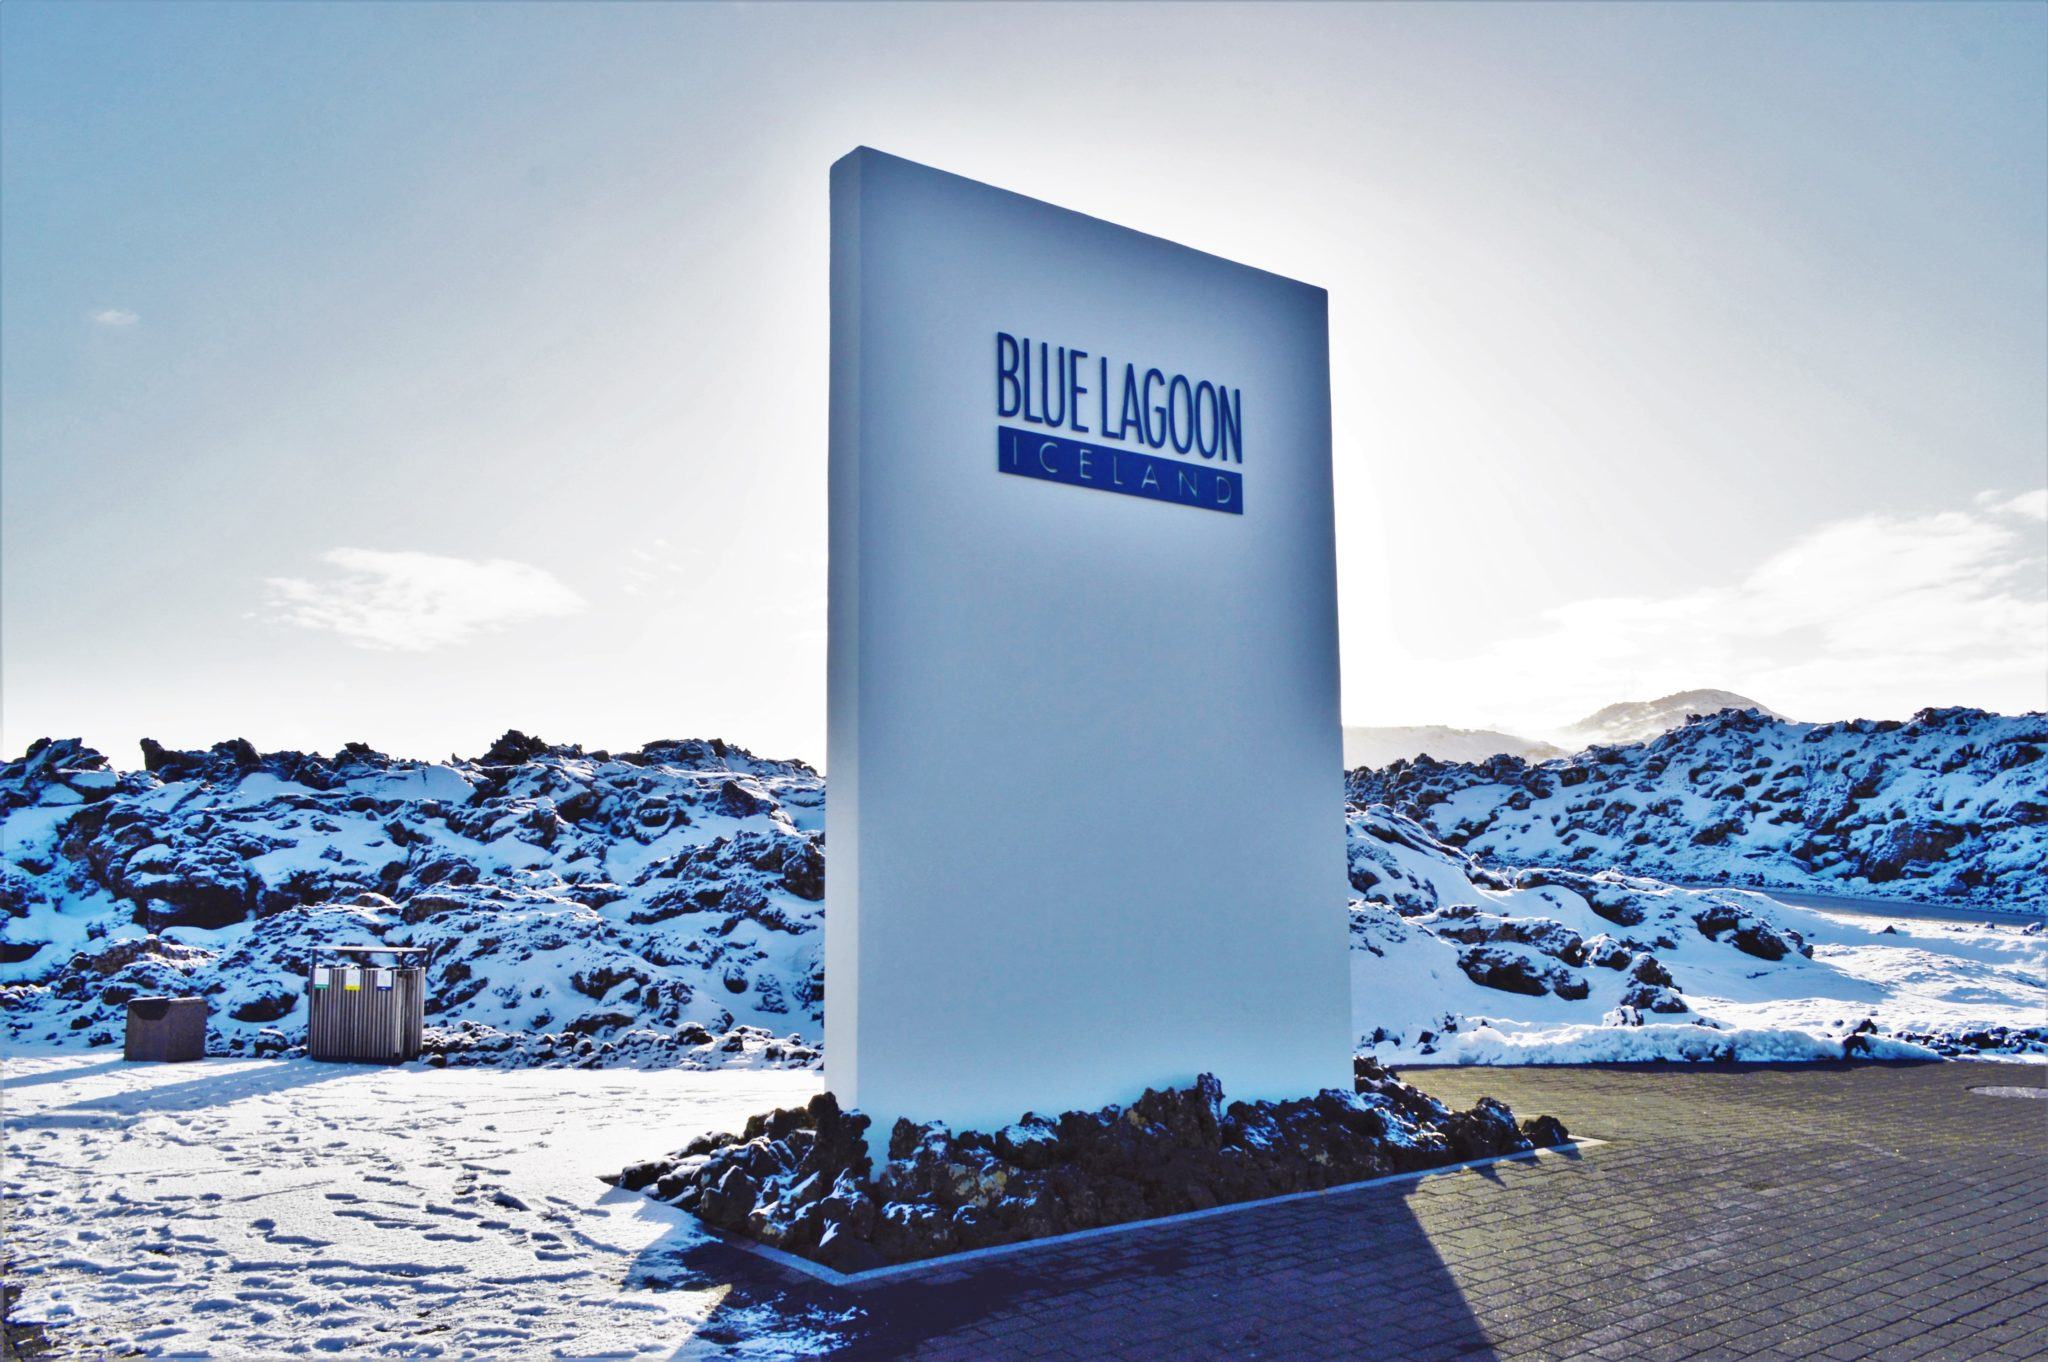 Blue Lagoon Entrance in Iceland, Europe